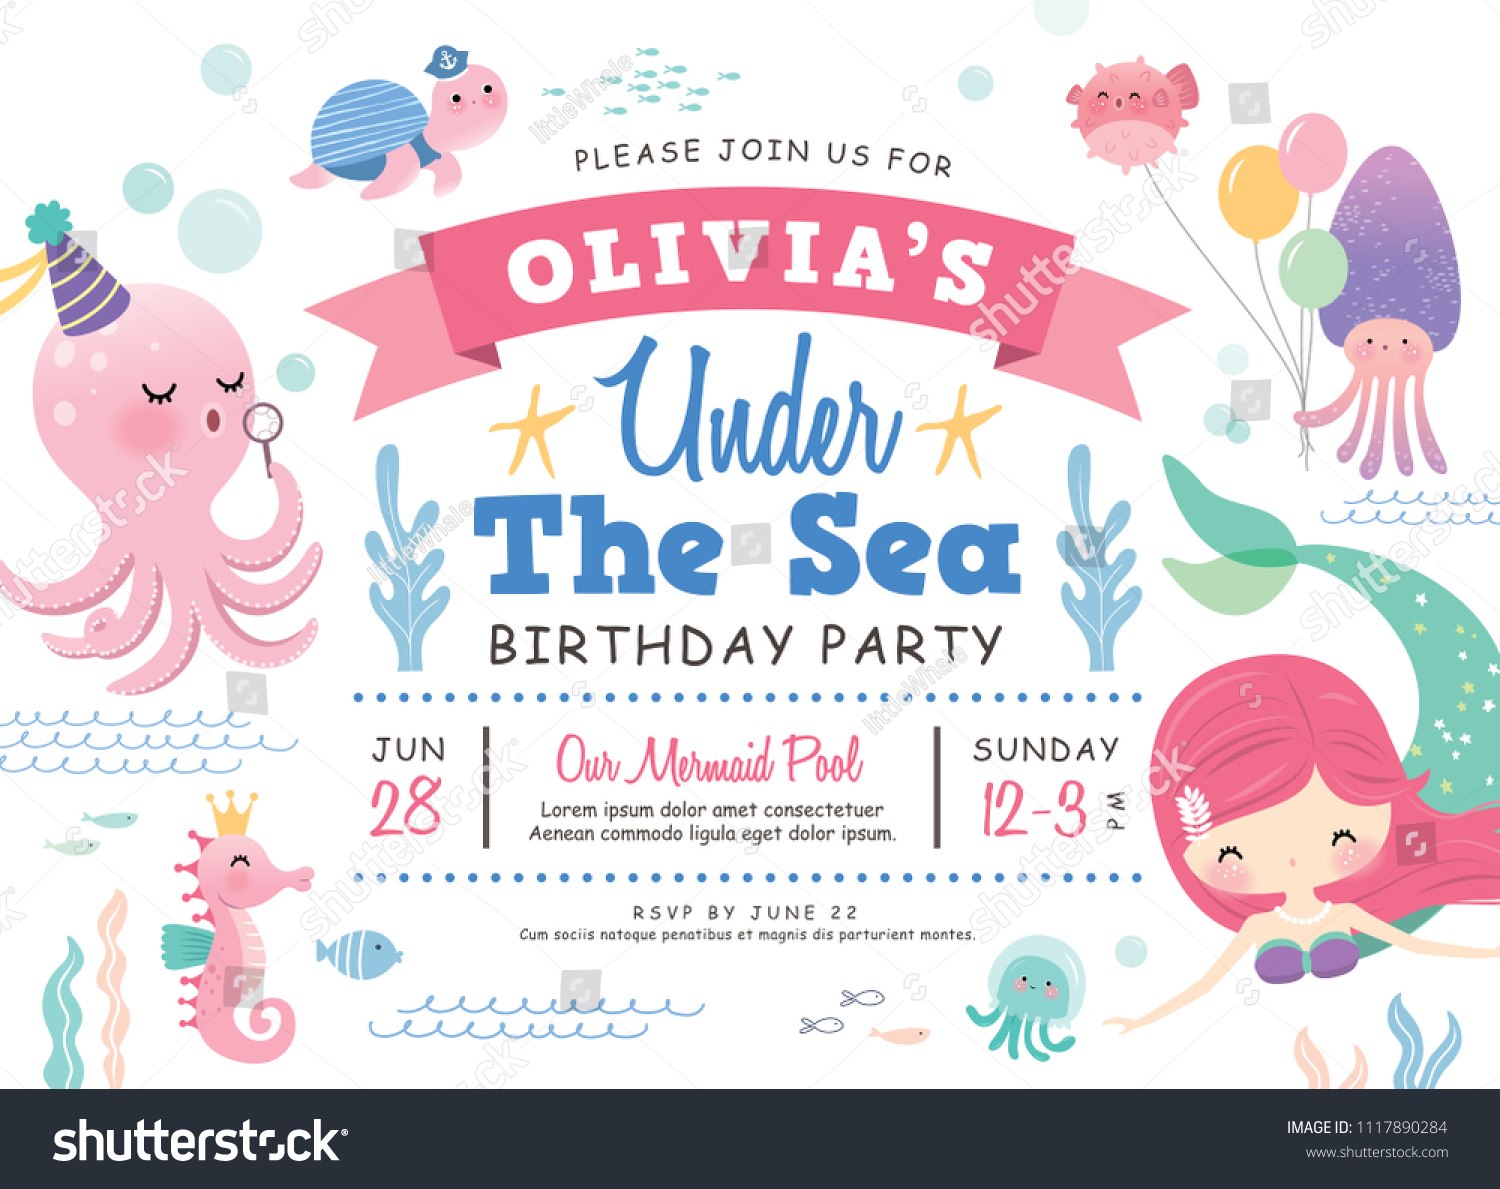 Kids Birthday Party Under Sea Theme Stock Vector (Royalty Free ...